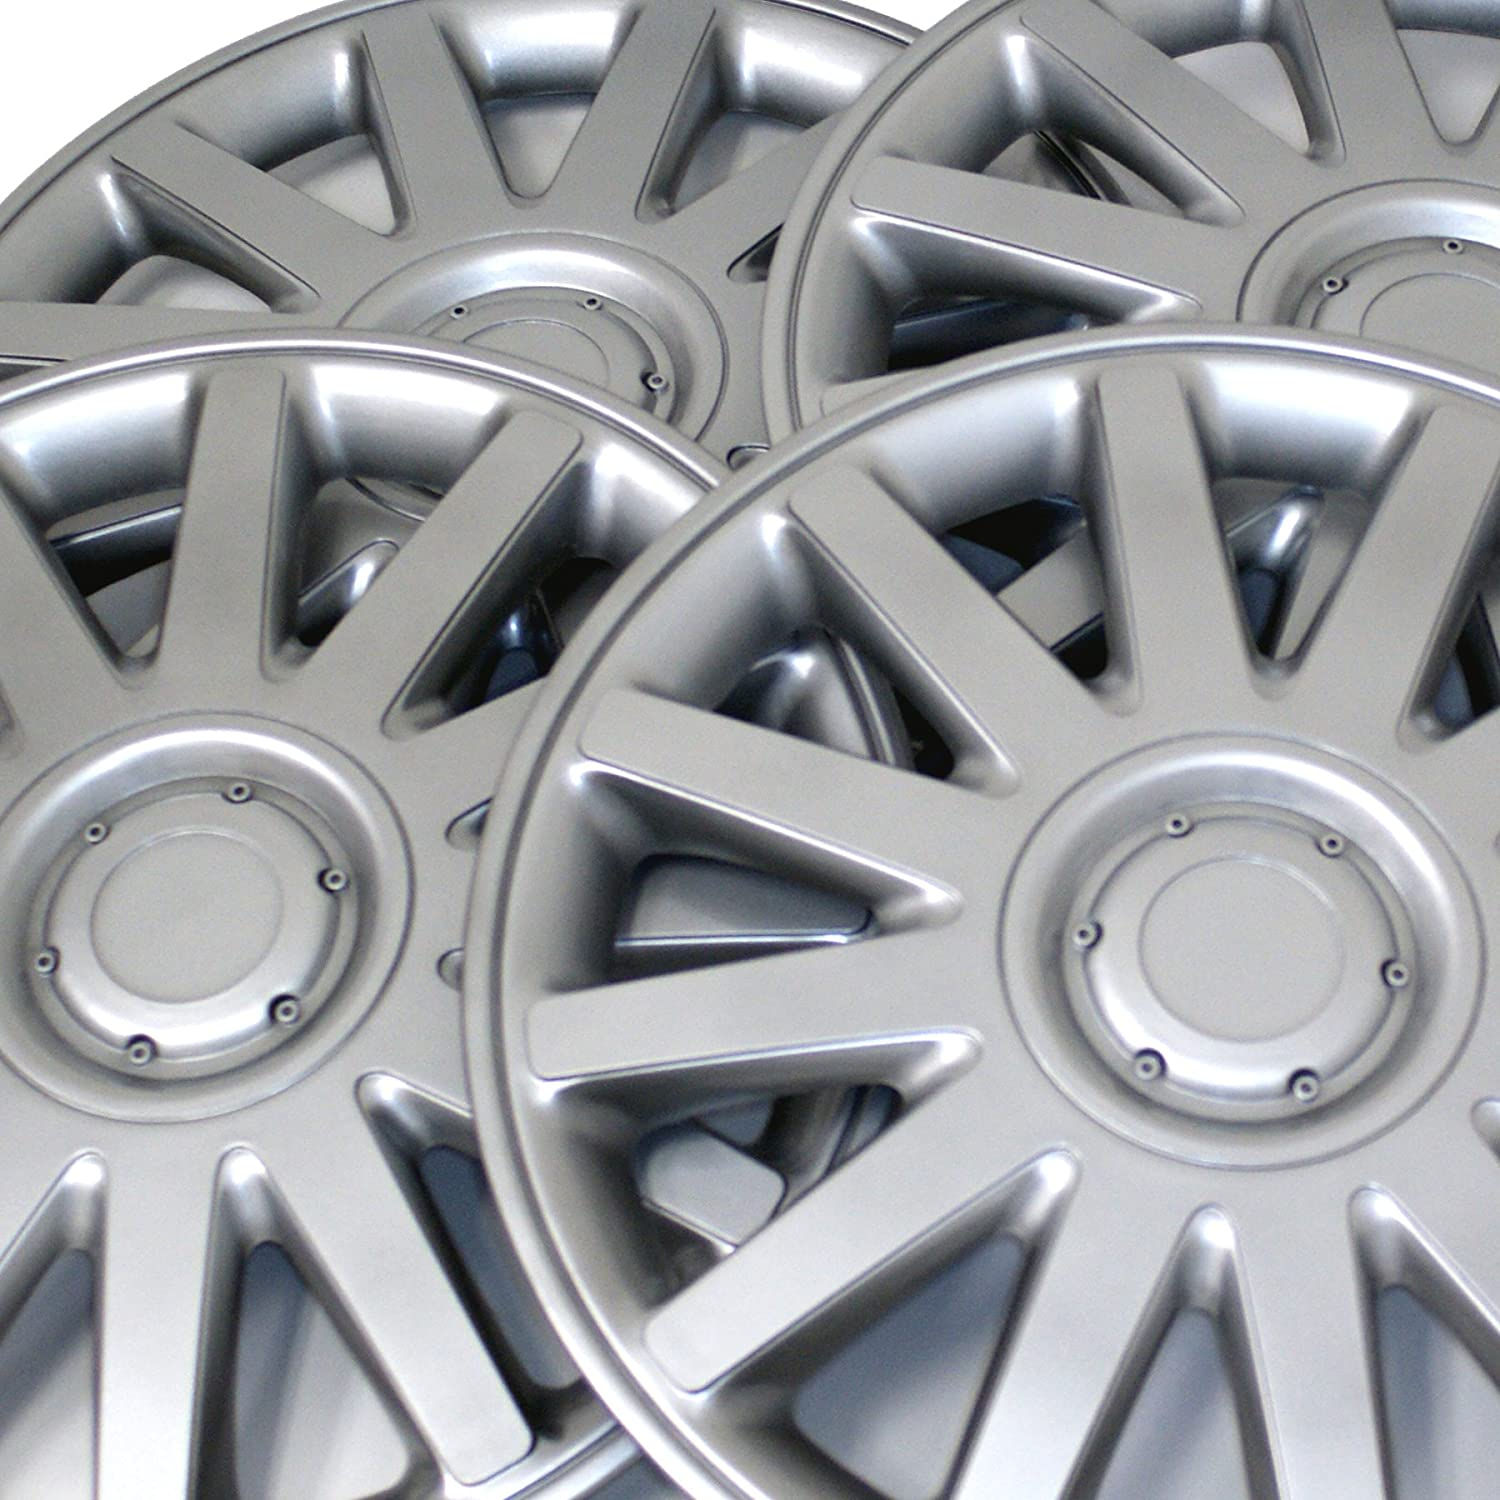 Type Metallic Silver Wheel Covers Hub-caps Pack of 4 Hubcaps 17-Inches Style 610 Snap-On Pop-On Tuningpros WC3-17-610-S